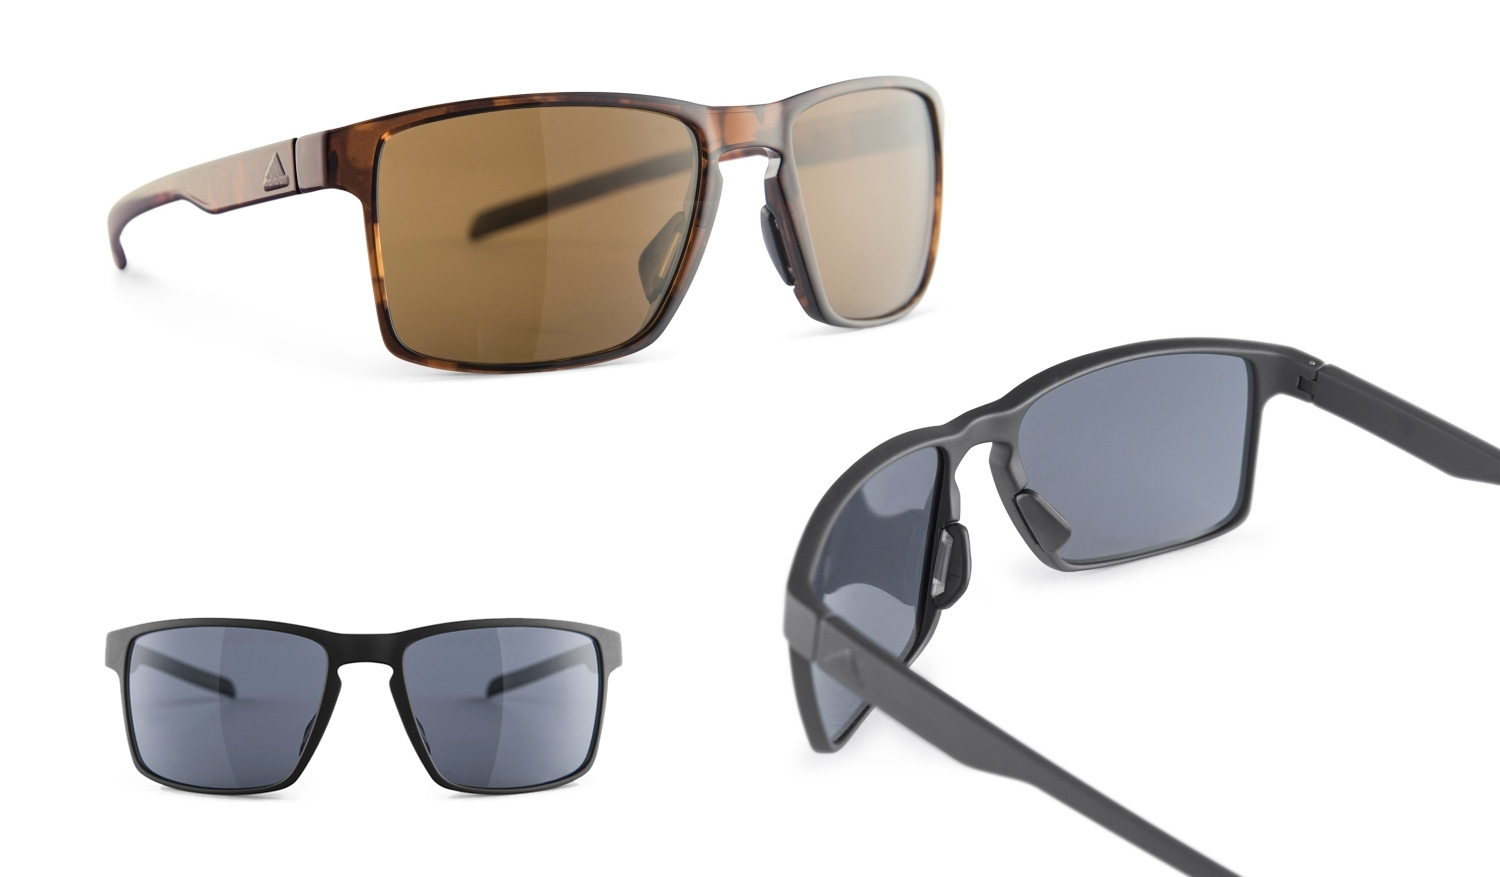 Adidas Sport Eyewear Launches Two New Performance Lifestyle Frames ...